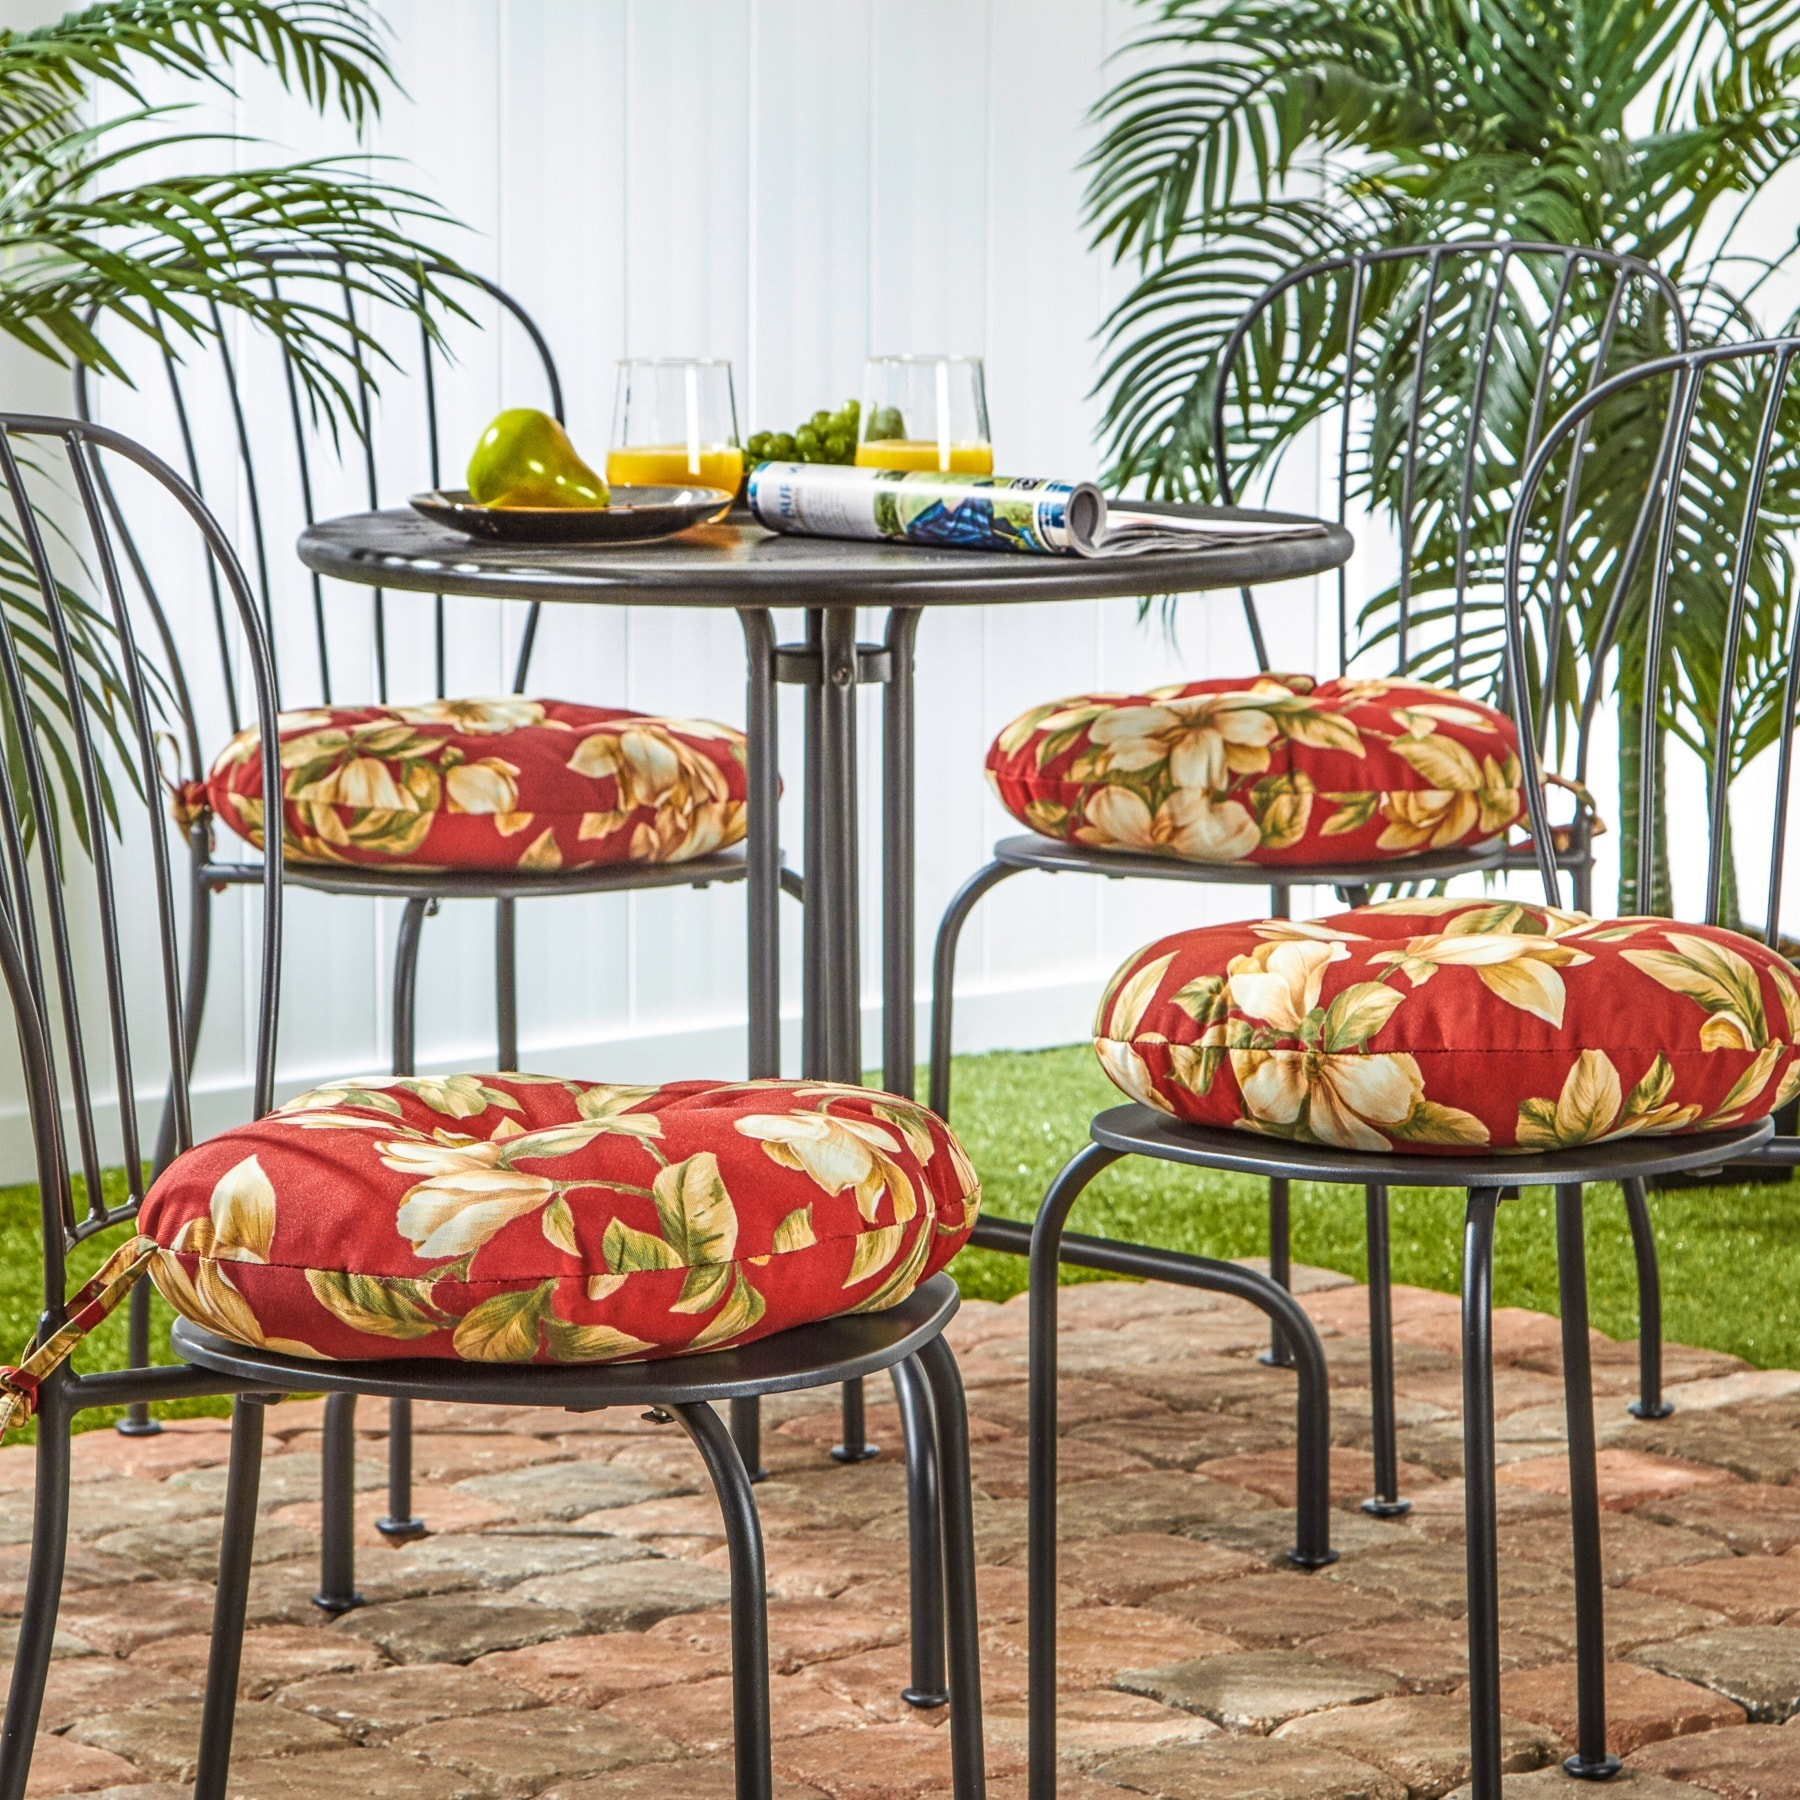 15 Inch Round Outdoor Roma Floral Bistro Chair Cushion (Set Of 4)